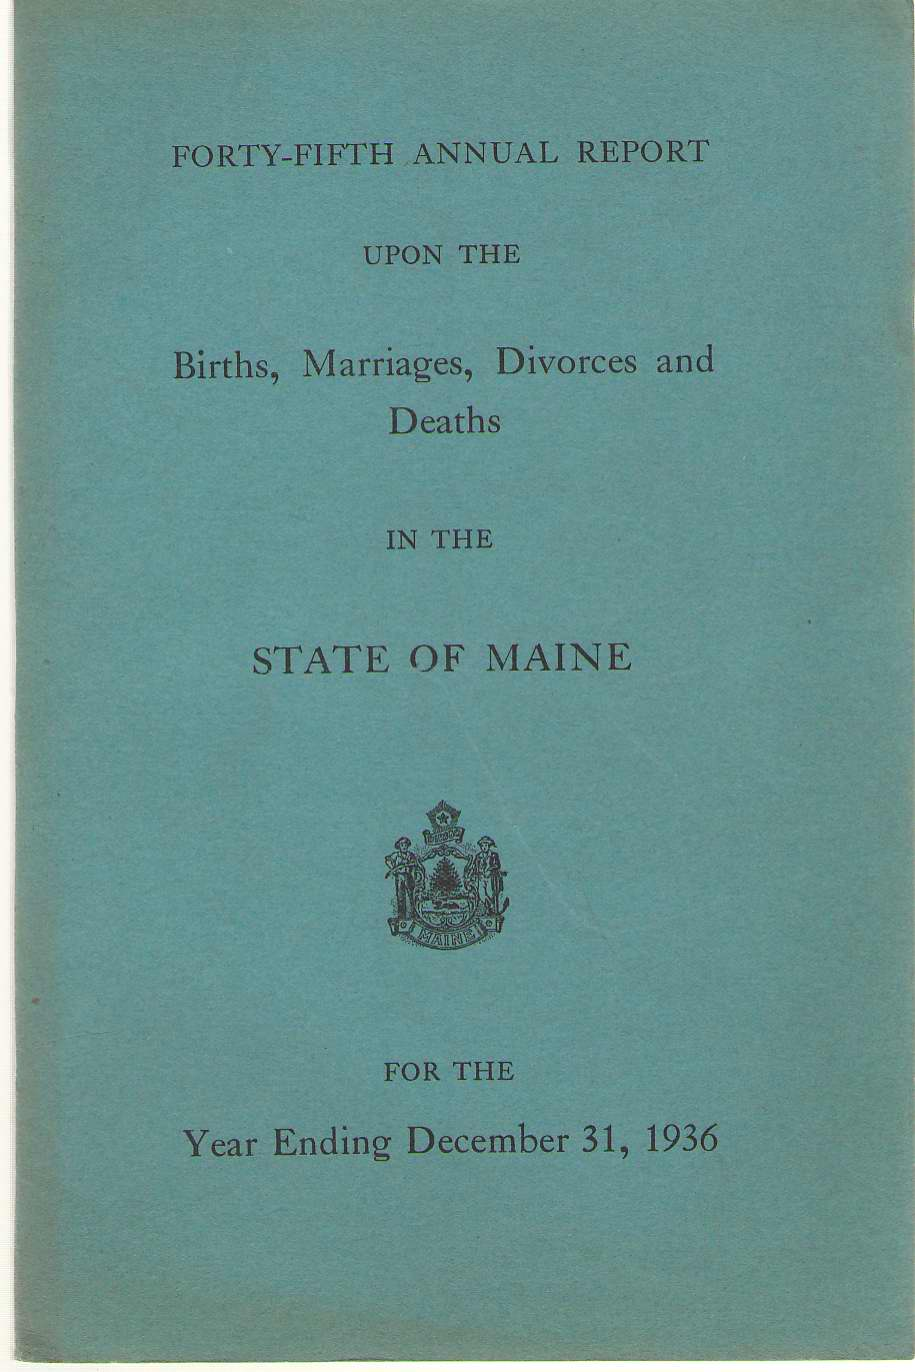 Image for Forty-fifth Annual Report On Births, Marriages, Divorces, And Deaths, In The State Of Maine For The Year Ending December 31, 1936